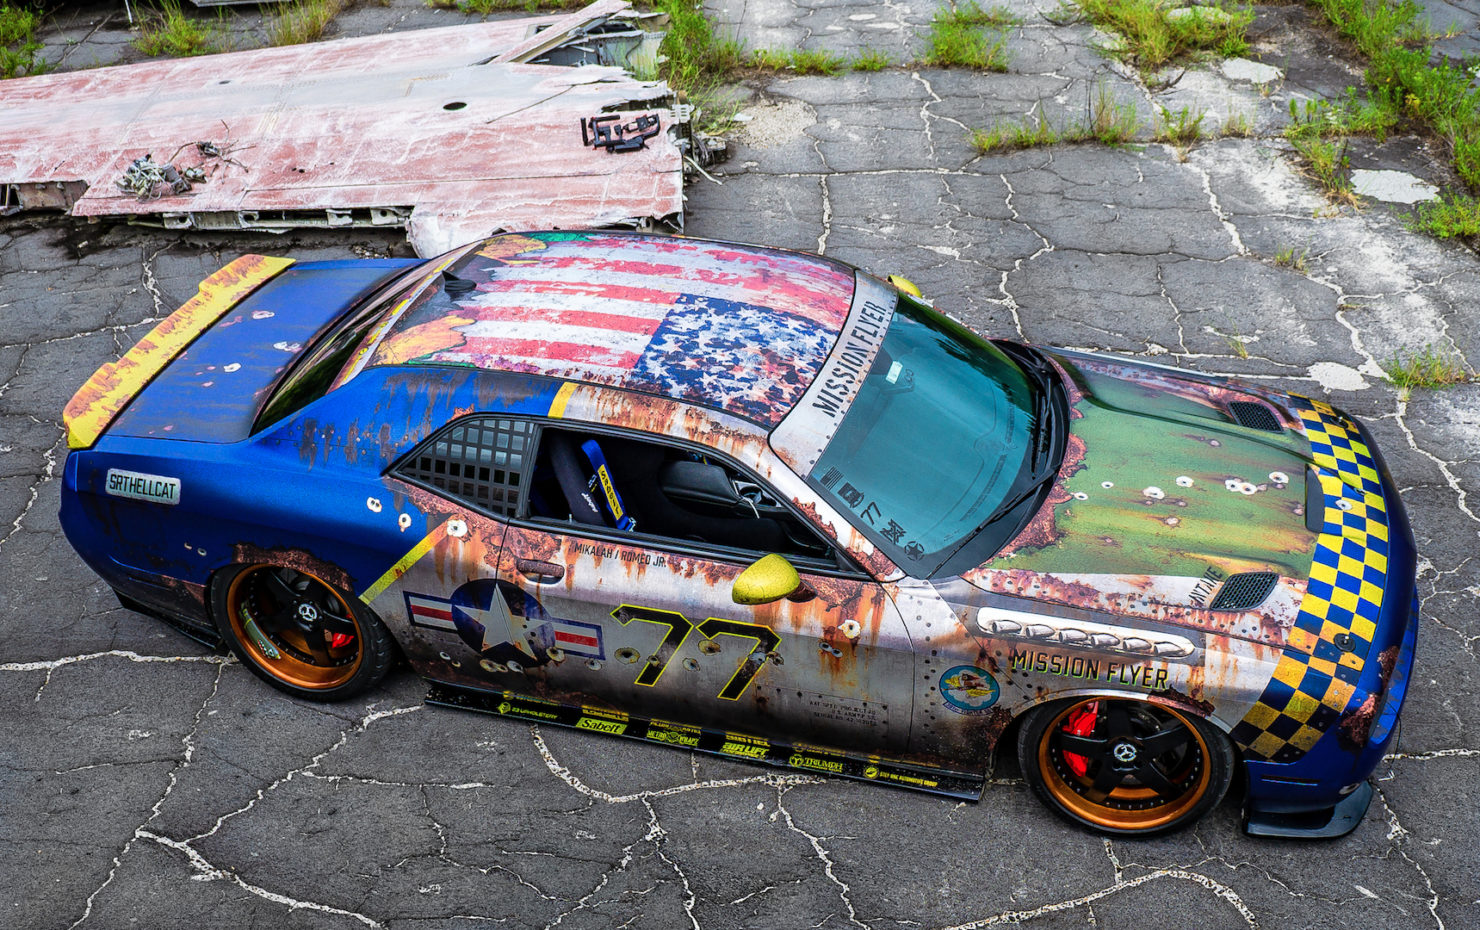 Metrowrapz Is The Winner Of The 2018 King Of The Wrap